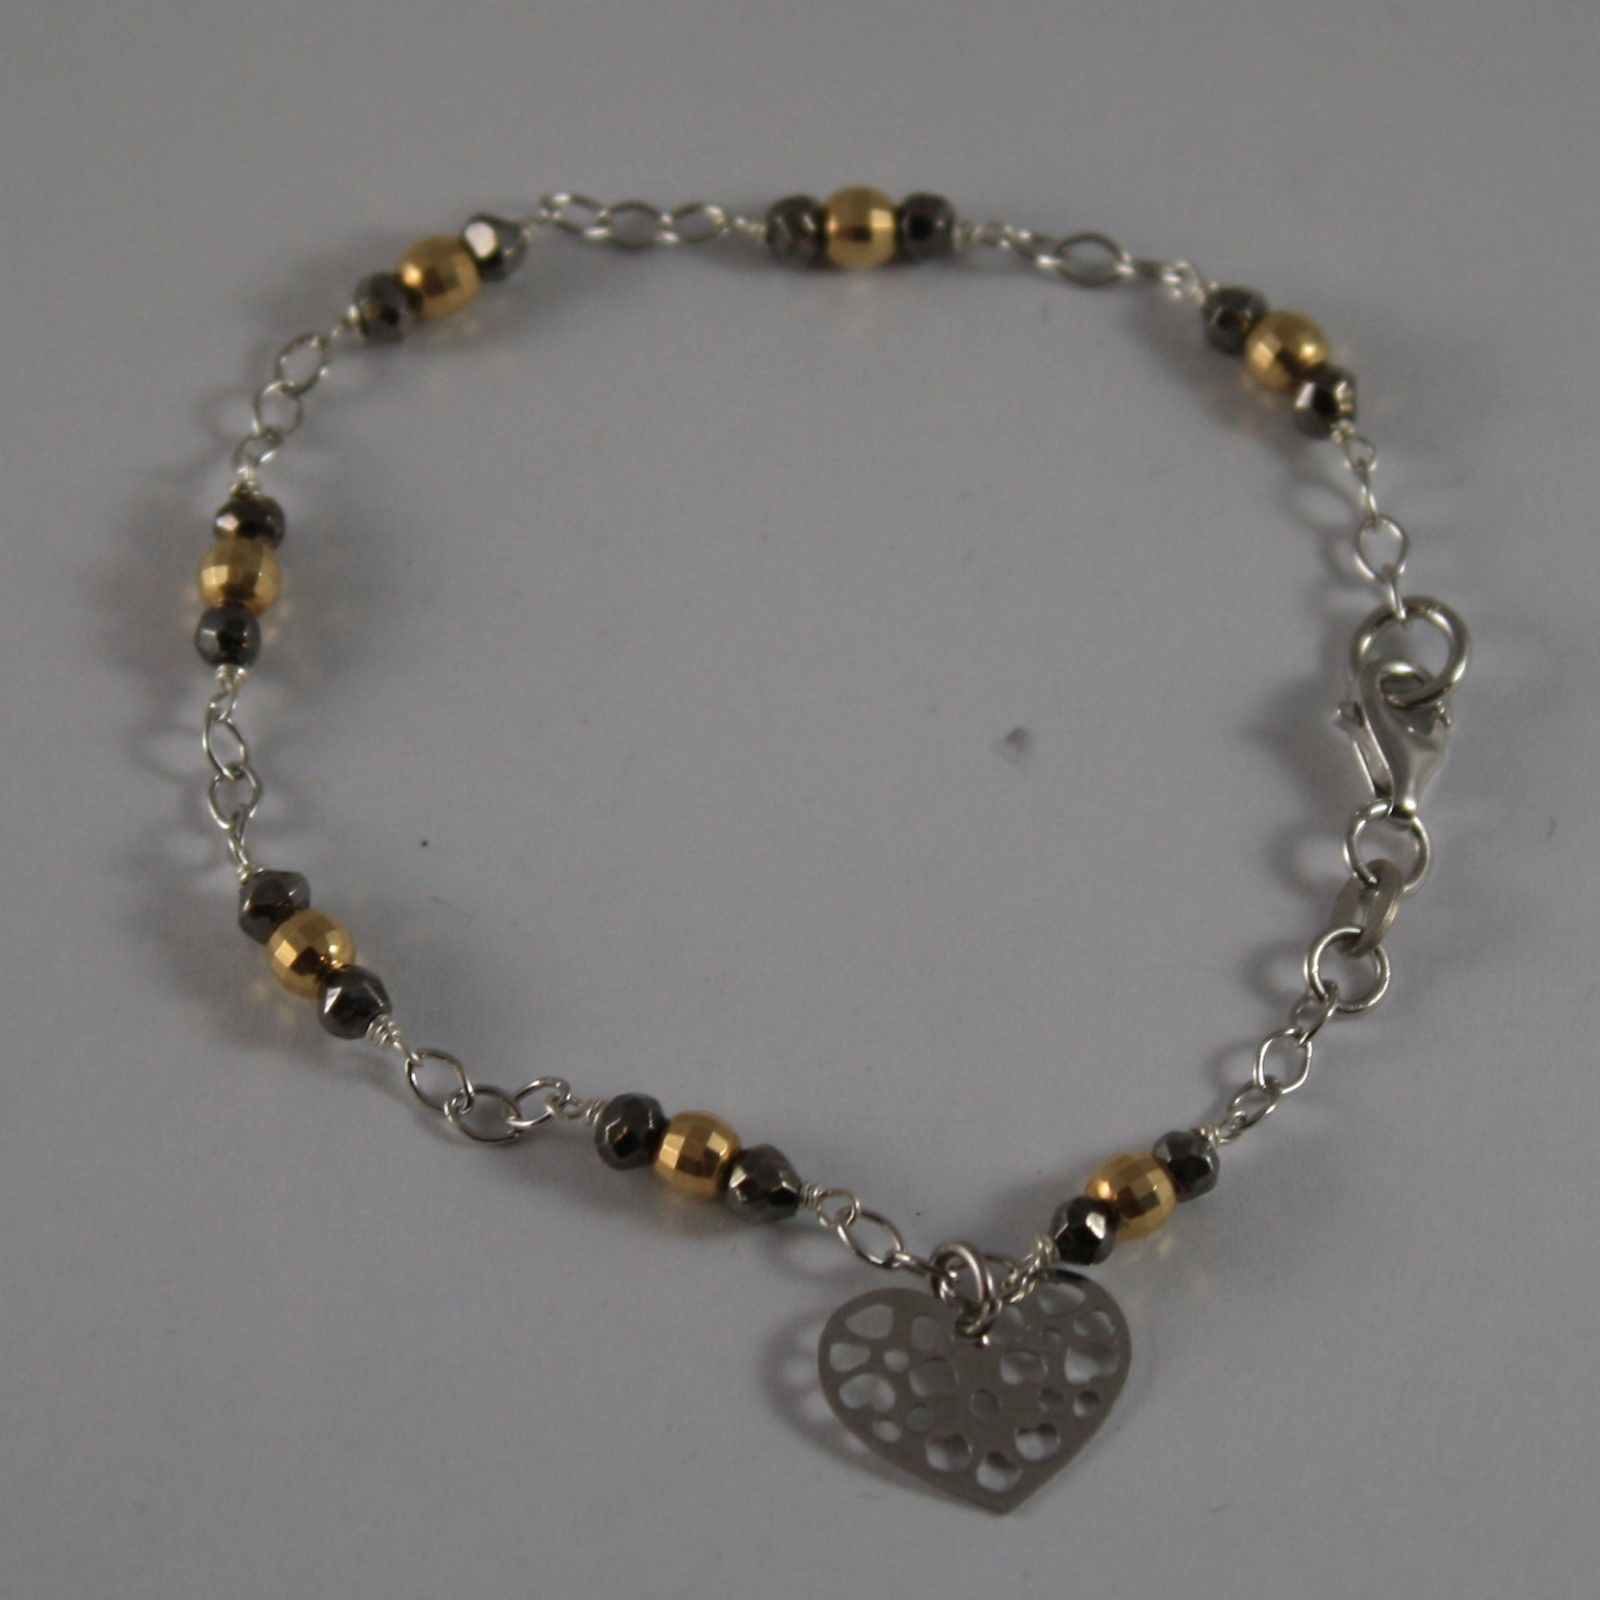 .925 RHODIUM SILVER BRACELET WITH GOLDEN AND BURNISHED SPHERES AND HEART